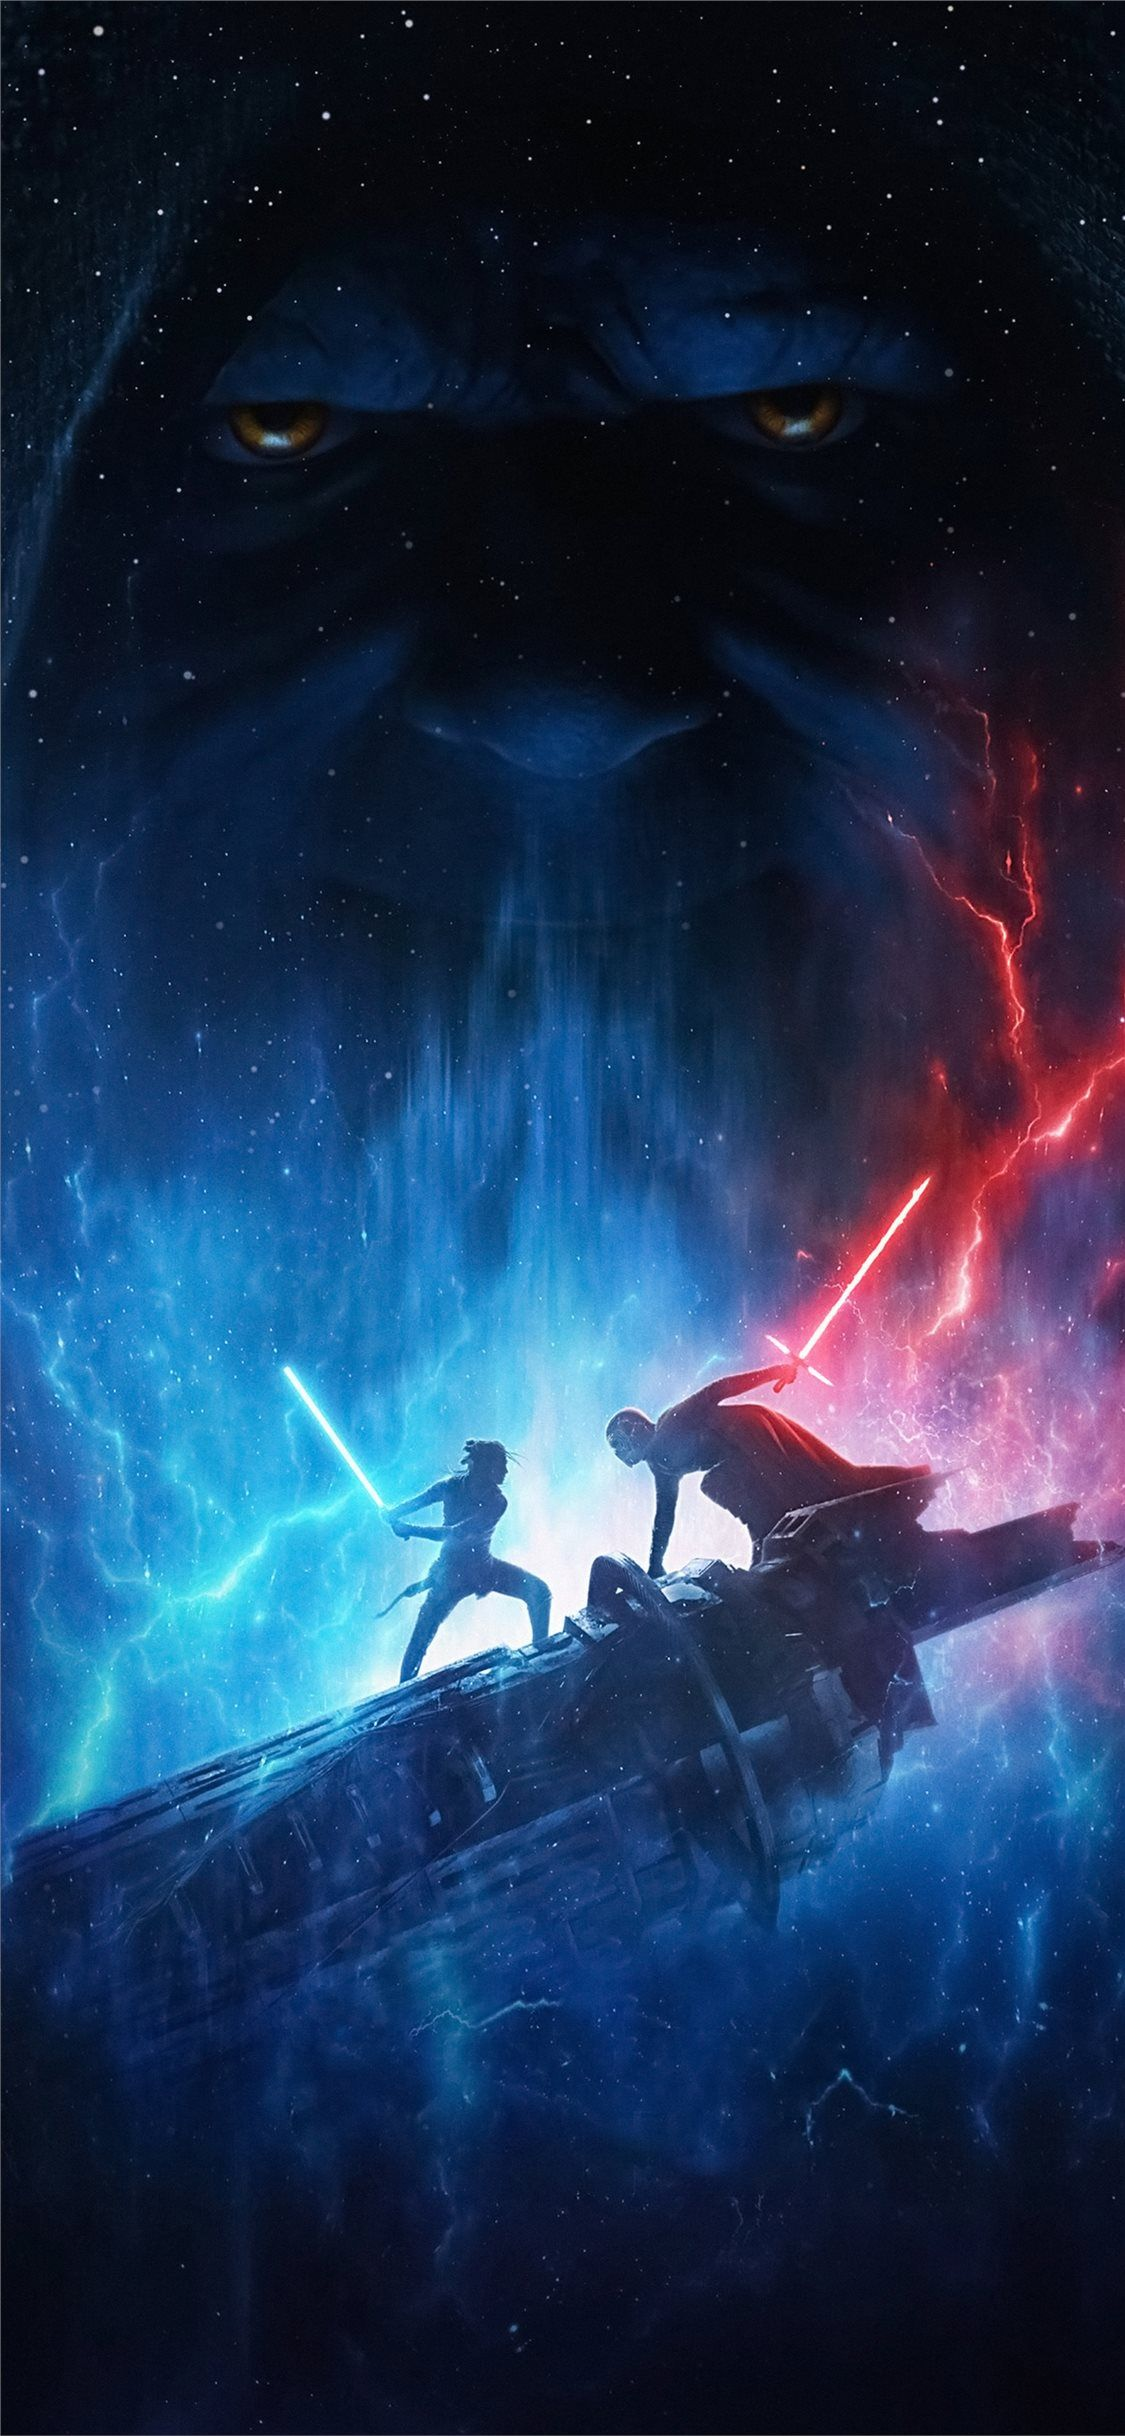 Star Wars Backgrounds Iphone : backgrounds, iphone, Skywalker, Wallpaper, Iphone,, Wallpaper,, Background